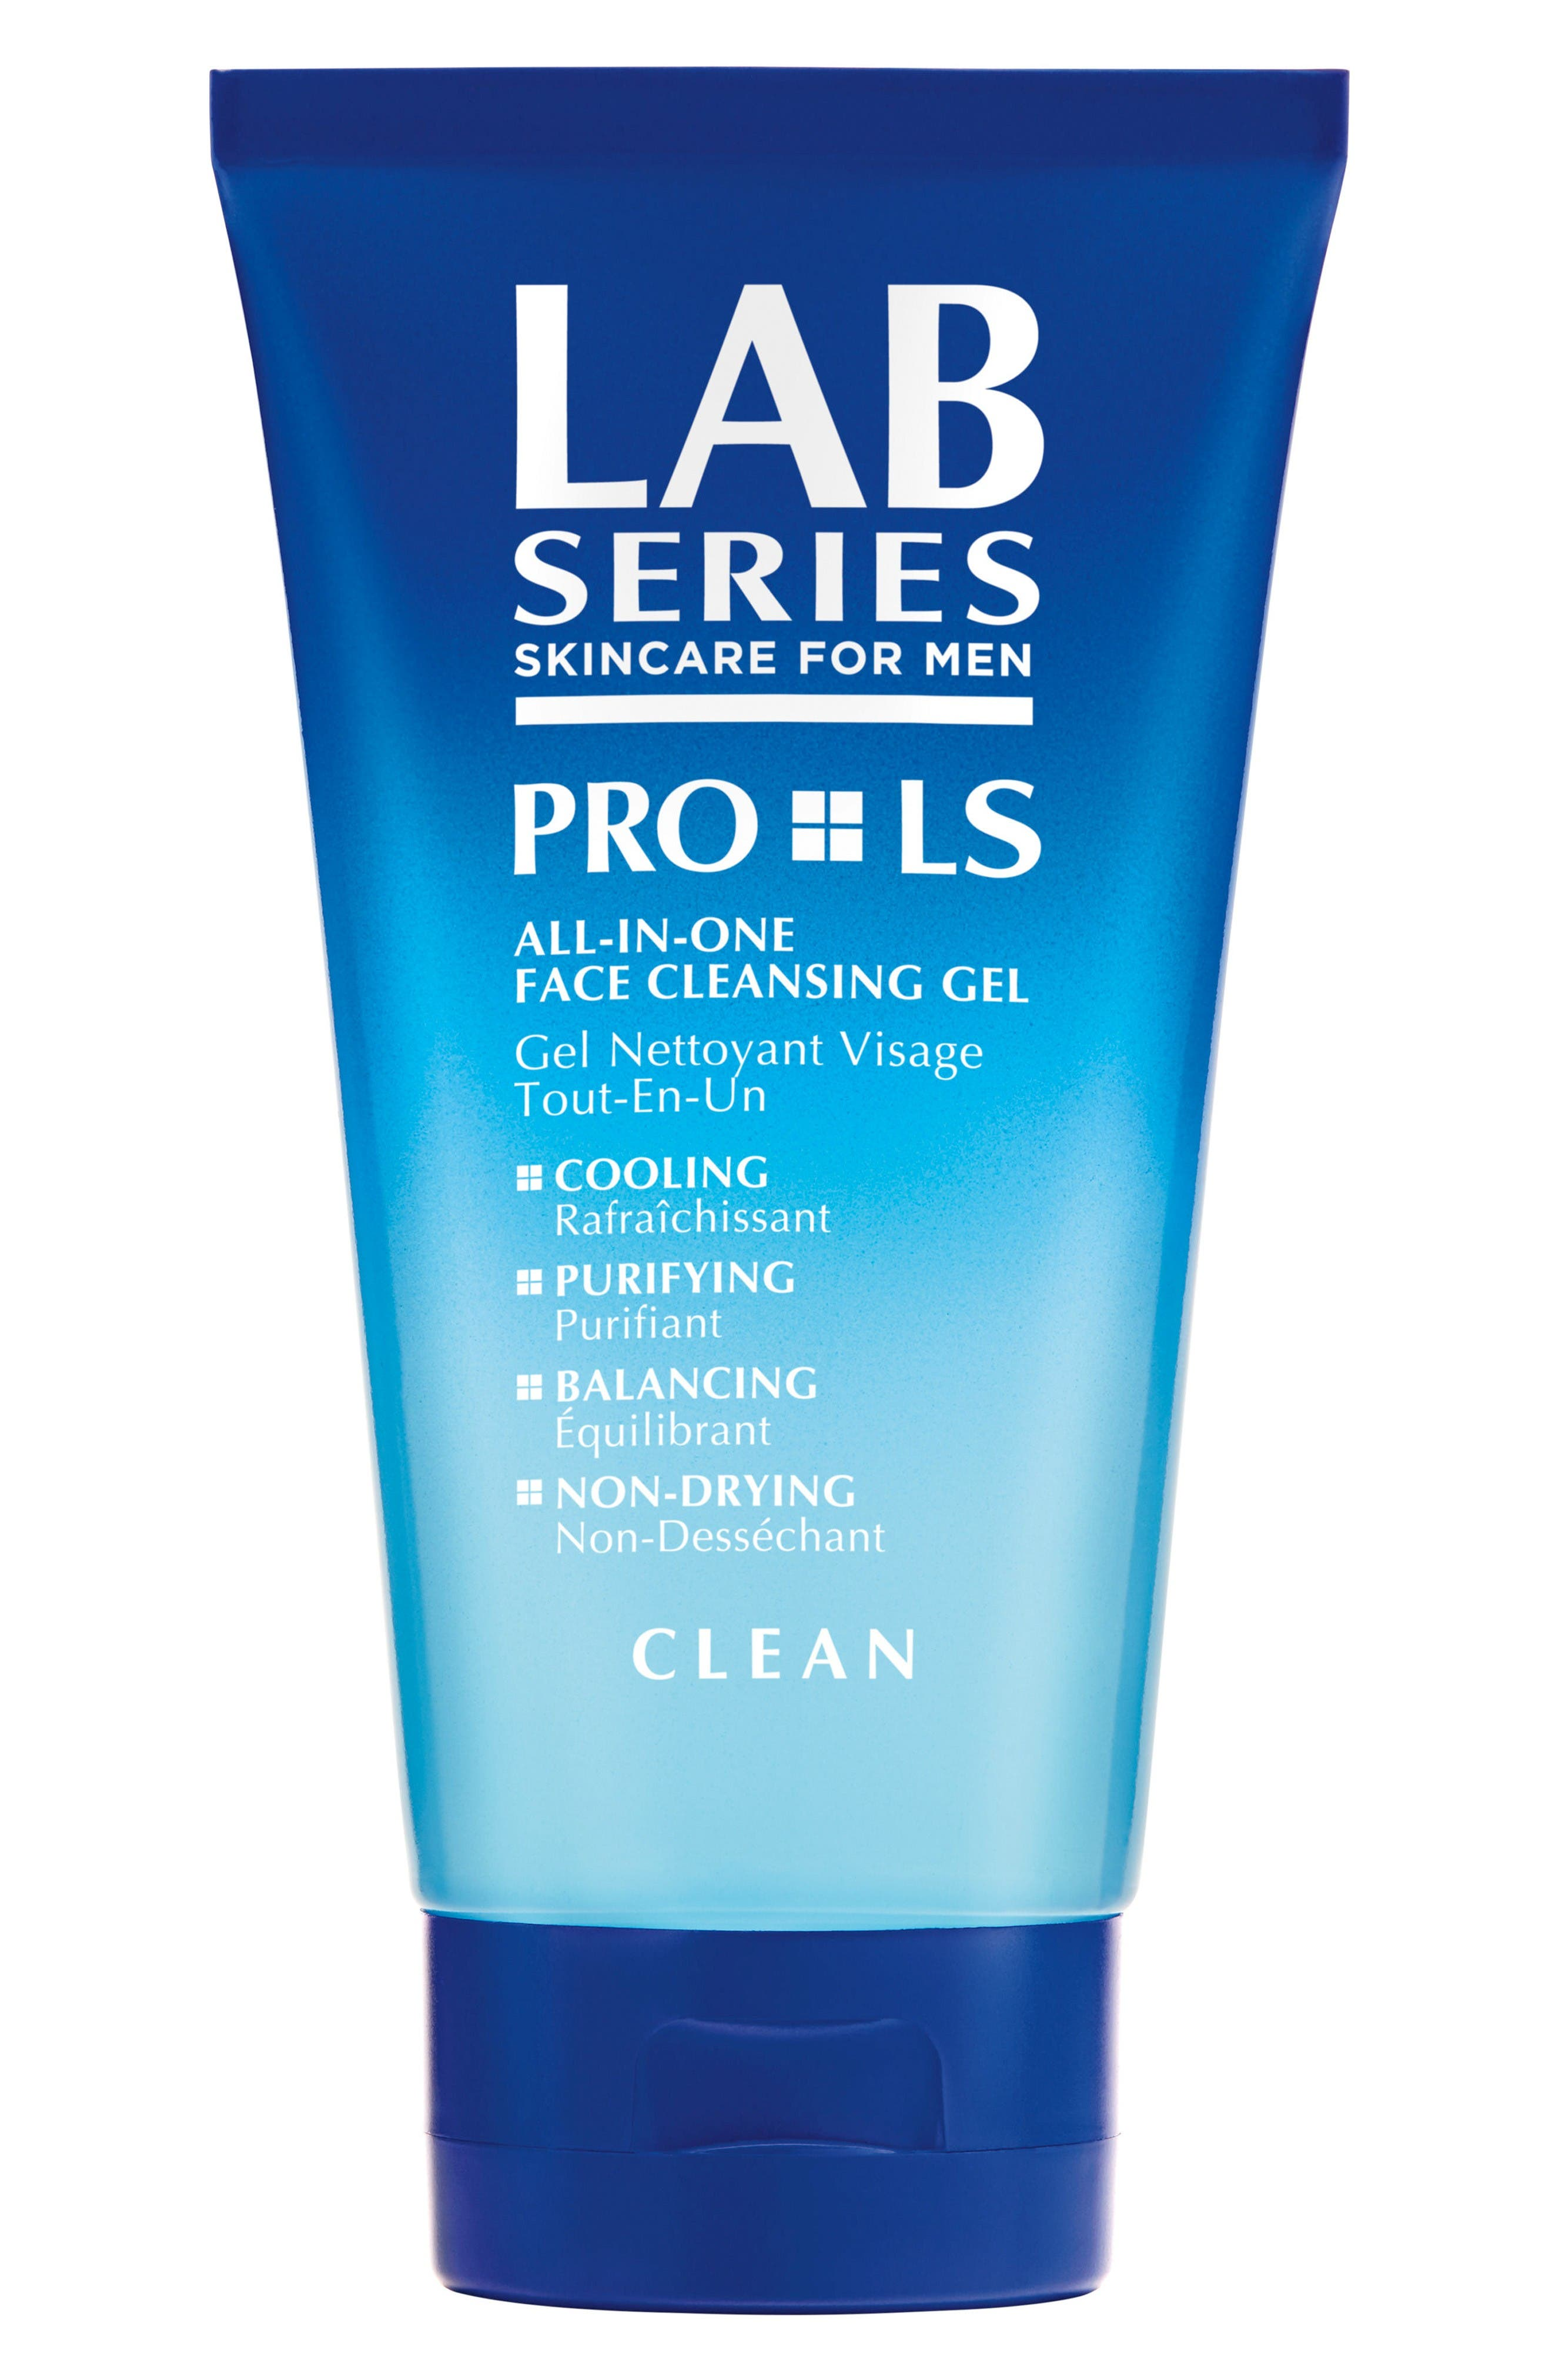 Alternate Image 1 Selected - Lab Series Skincare for Men PRO LS All-in-One Face Cleansing Gel